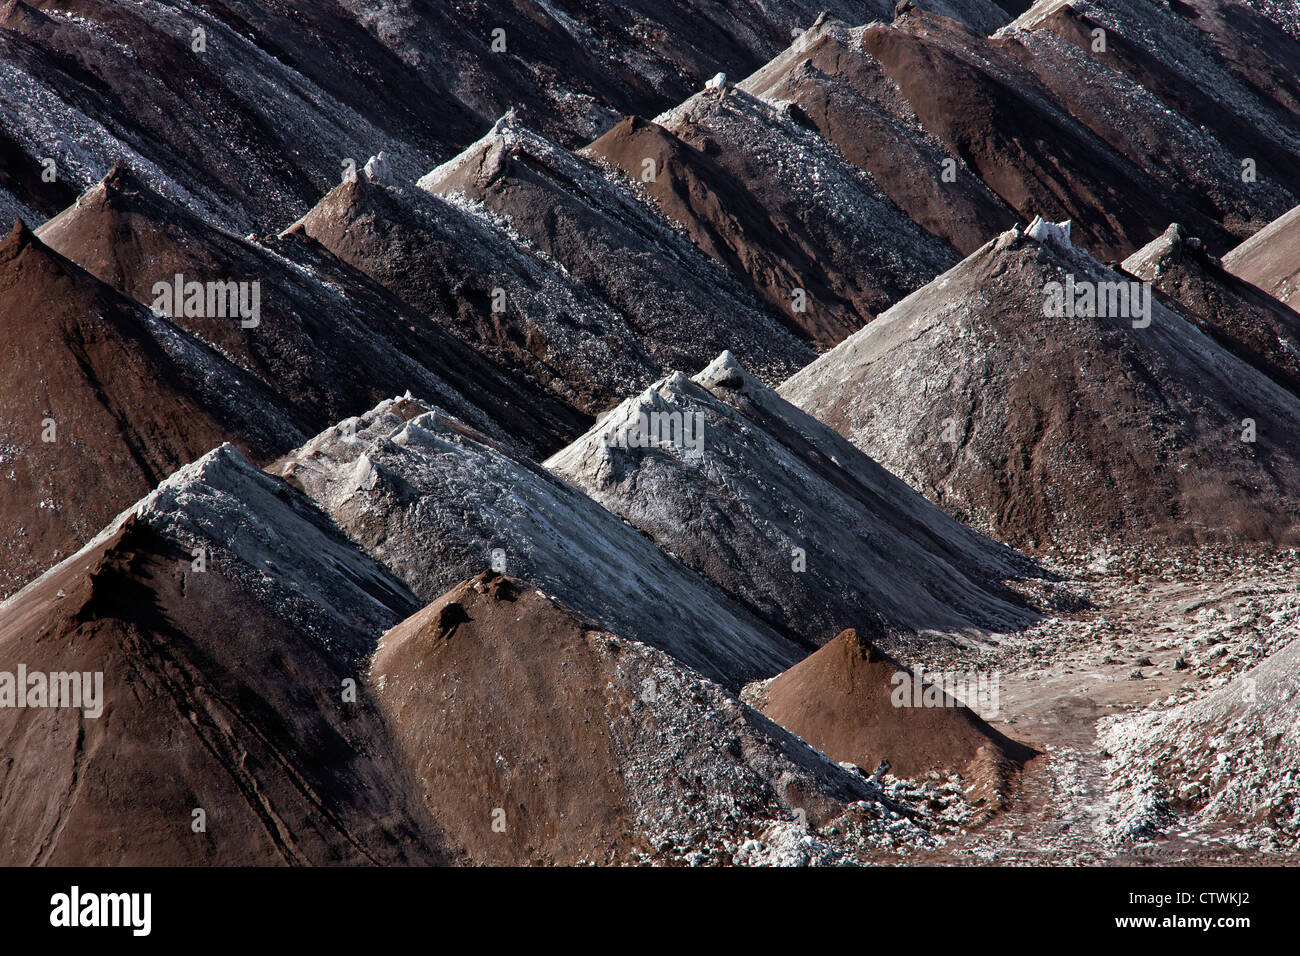 Spoil heaps from extracted brown coal / lignite at open-pit mine, Saxony-Anhalt, Germany Stock Photo